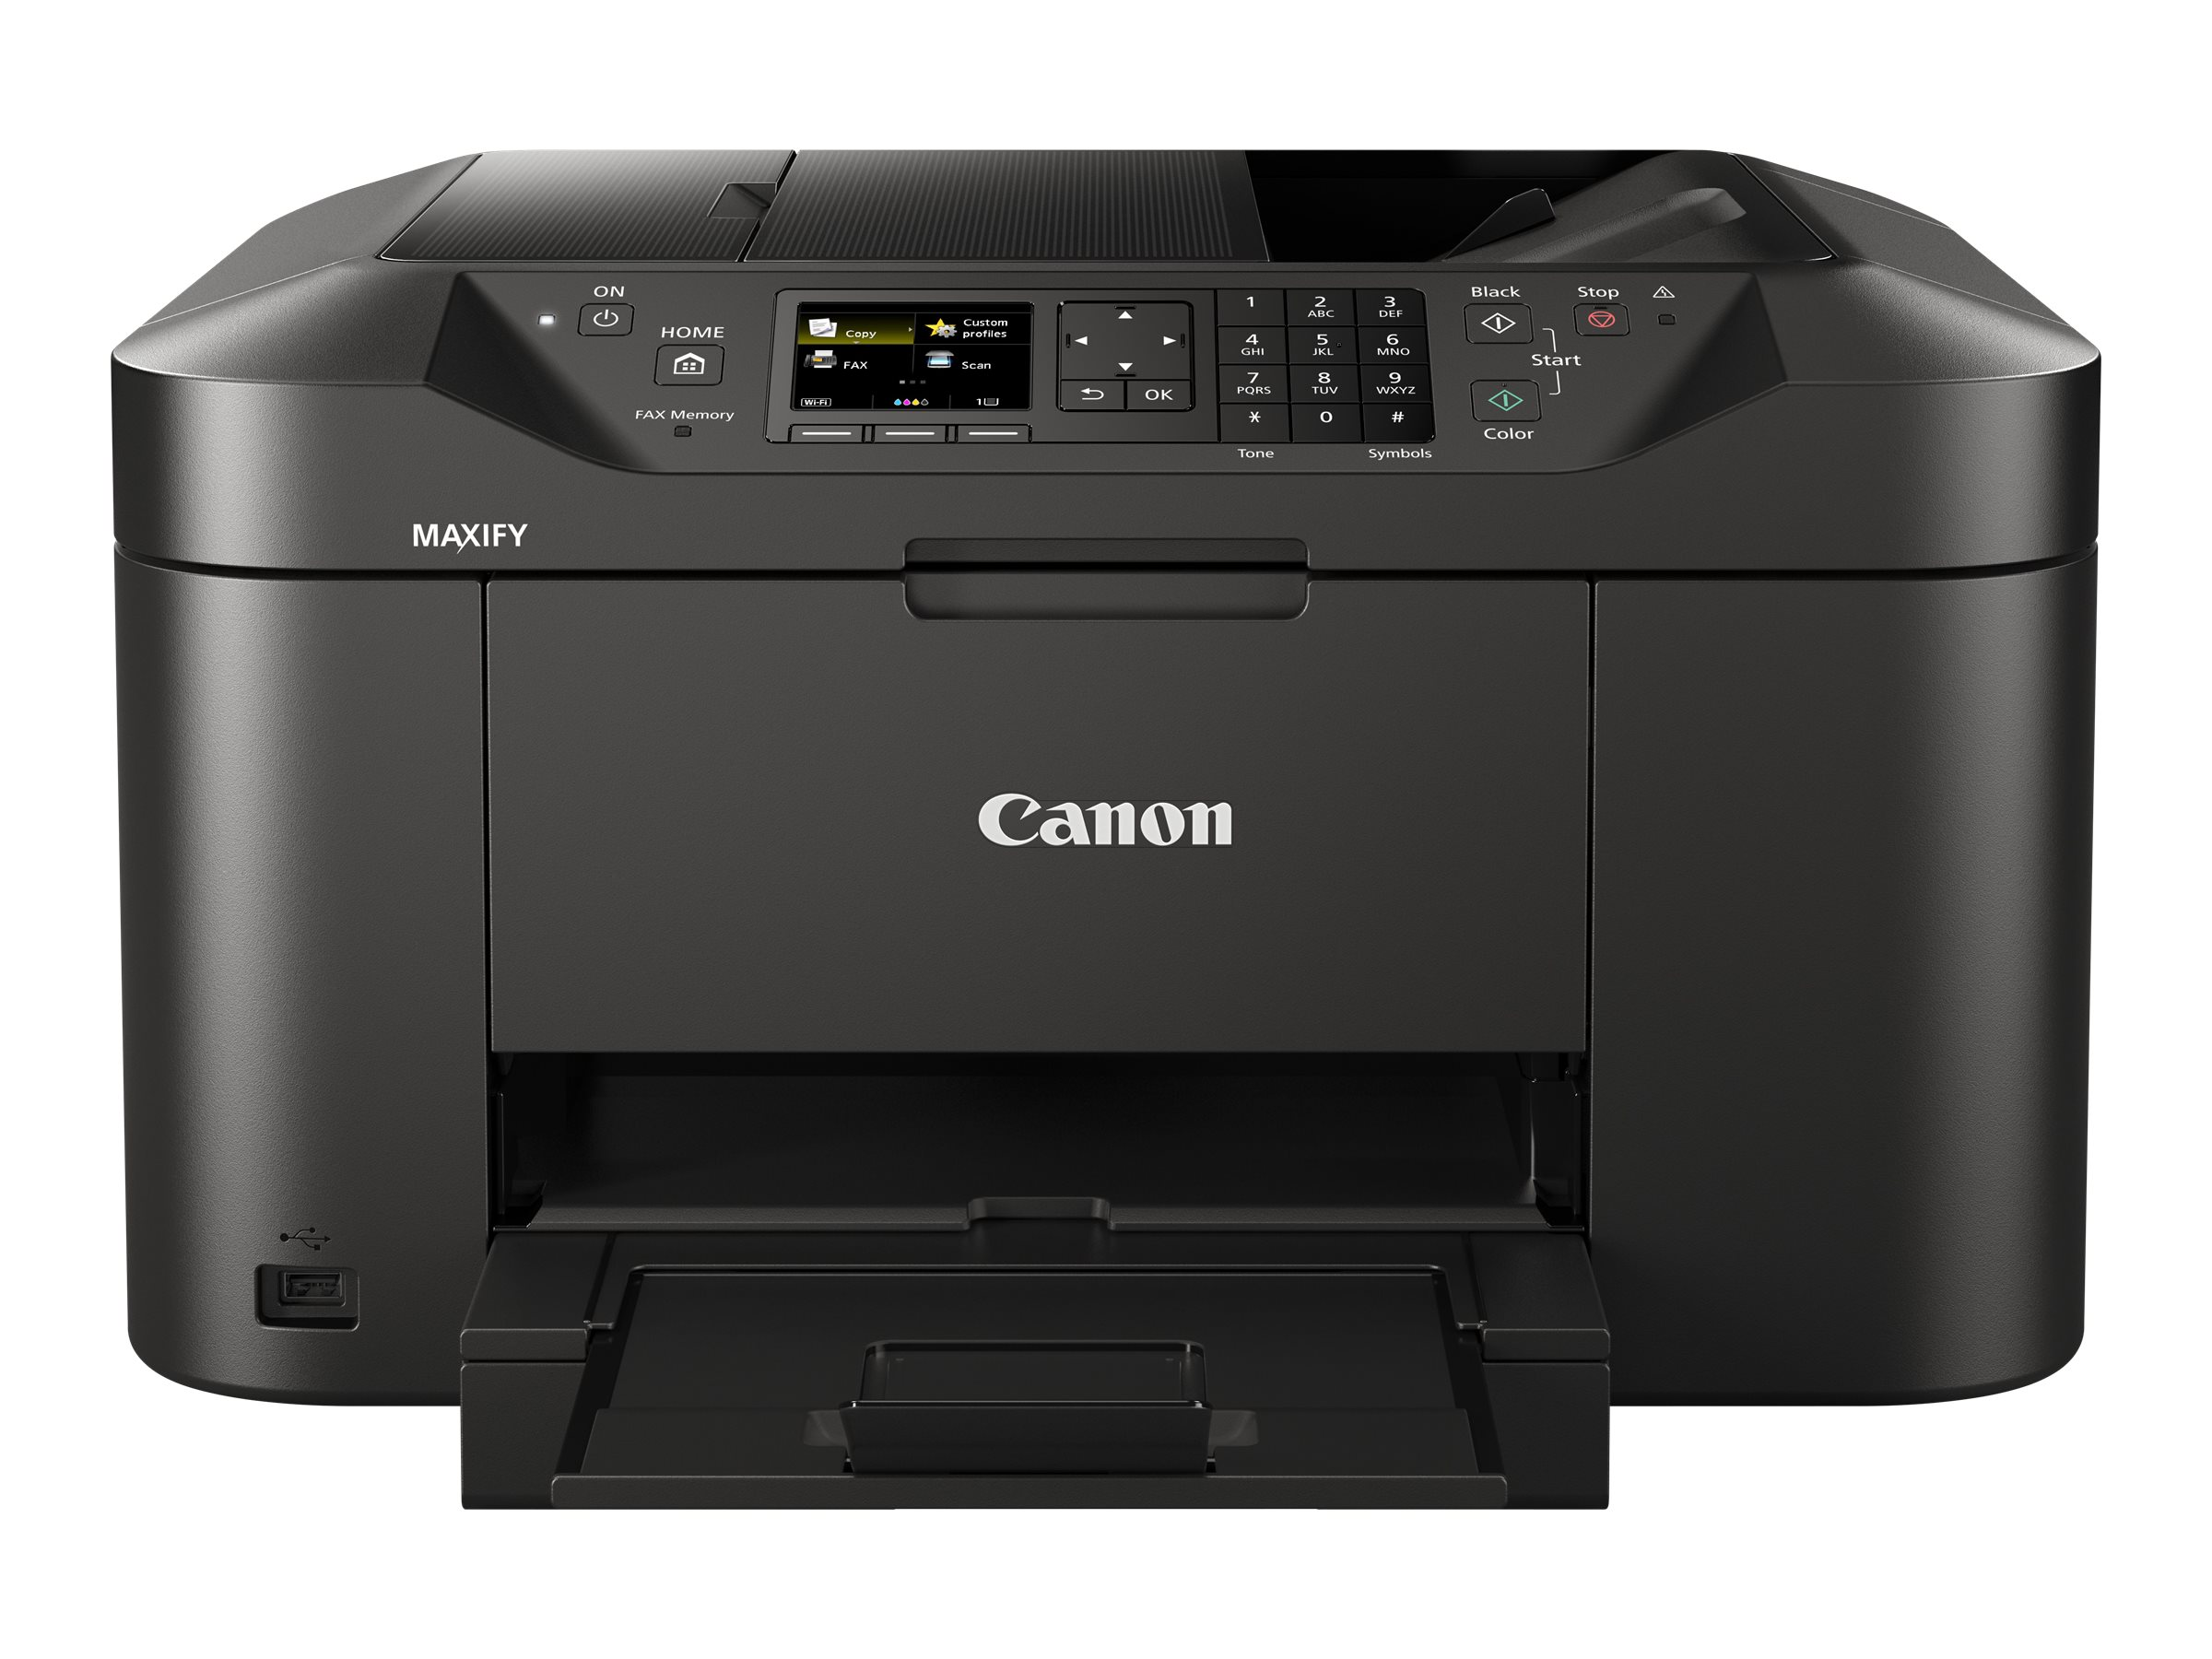 Canon MAXIFY MB2120 Wireless Home Office All-In-One Printer, 0959C002